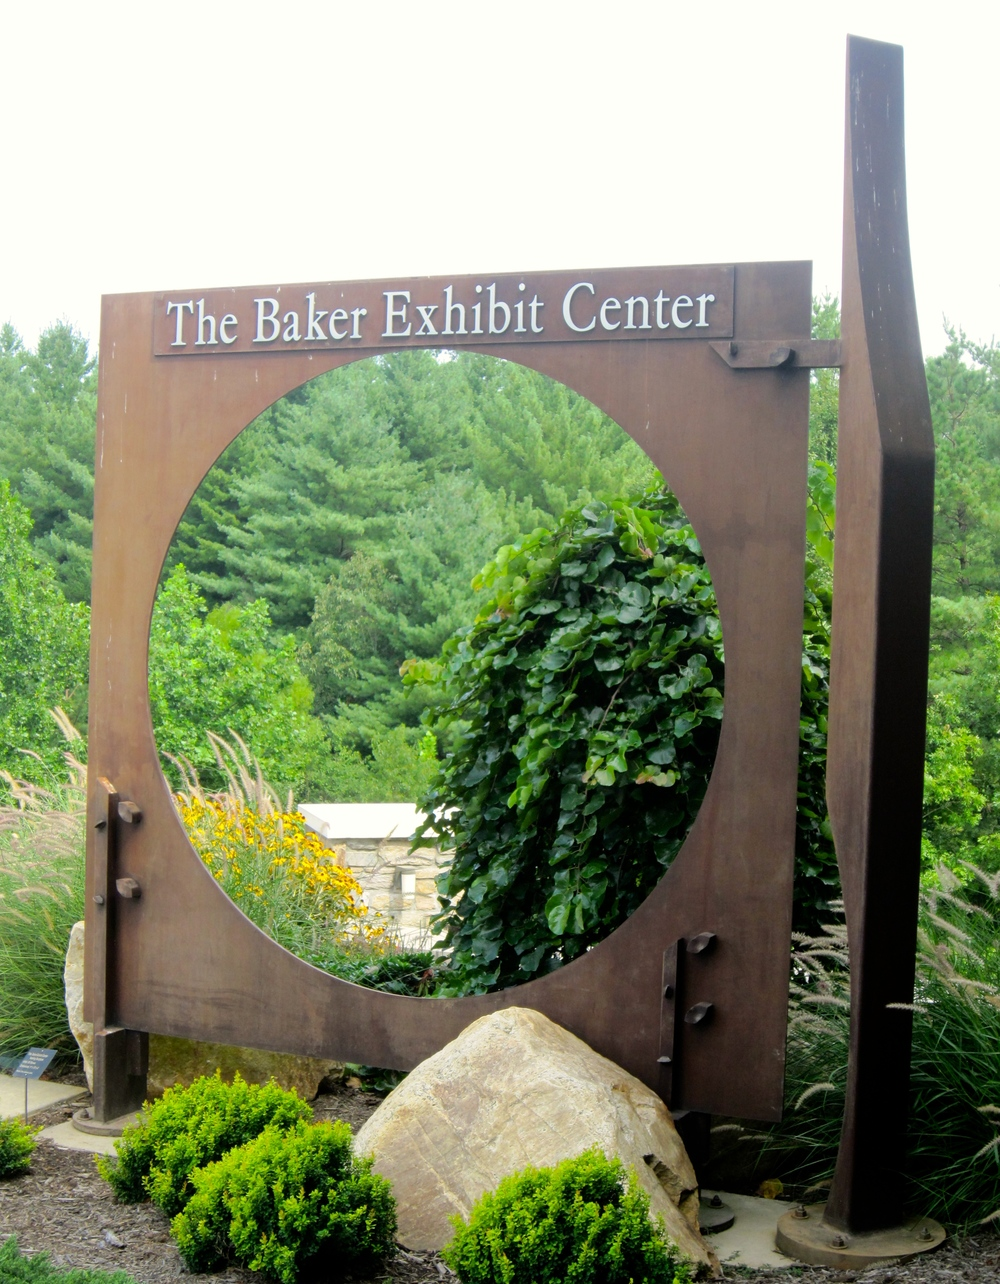 Baker Exhibition Center at the North Carolina Arboretum